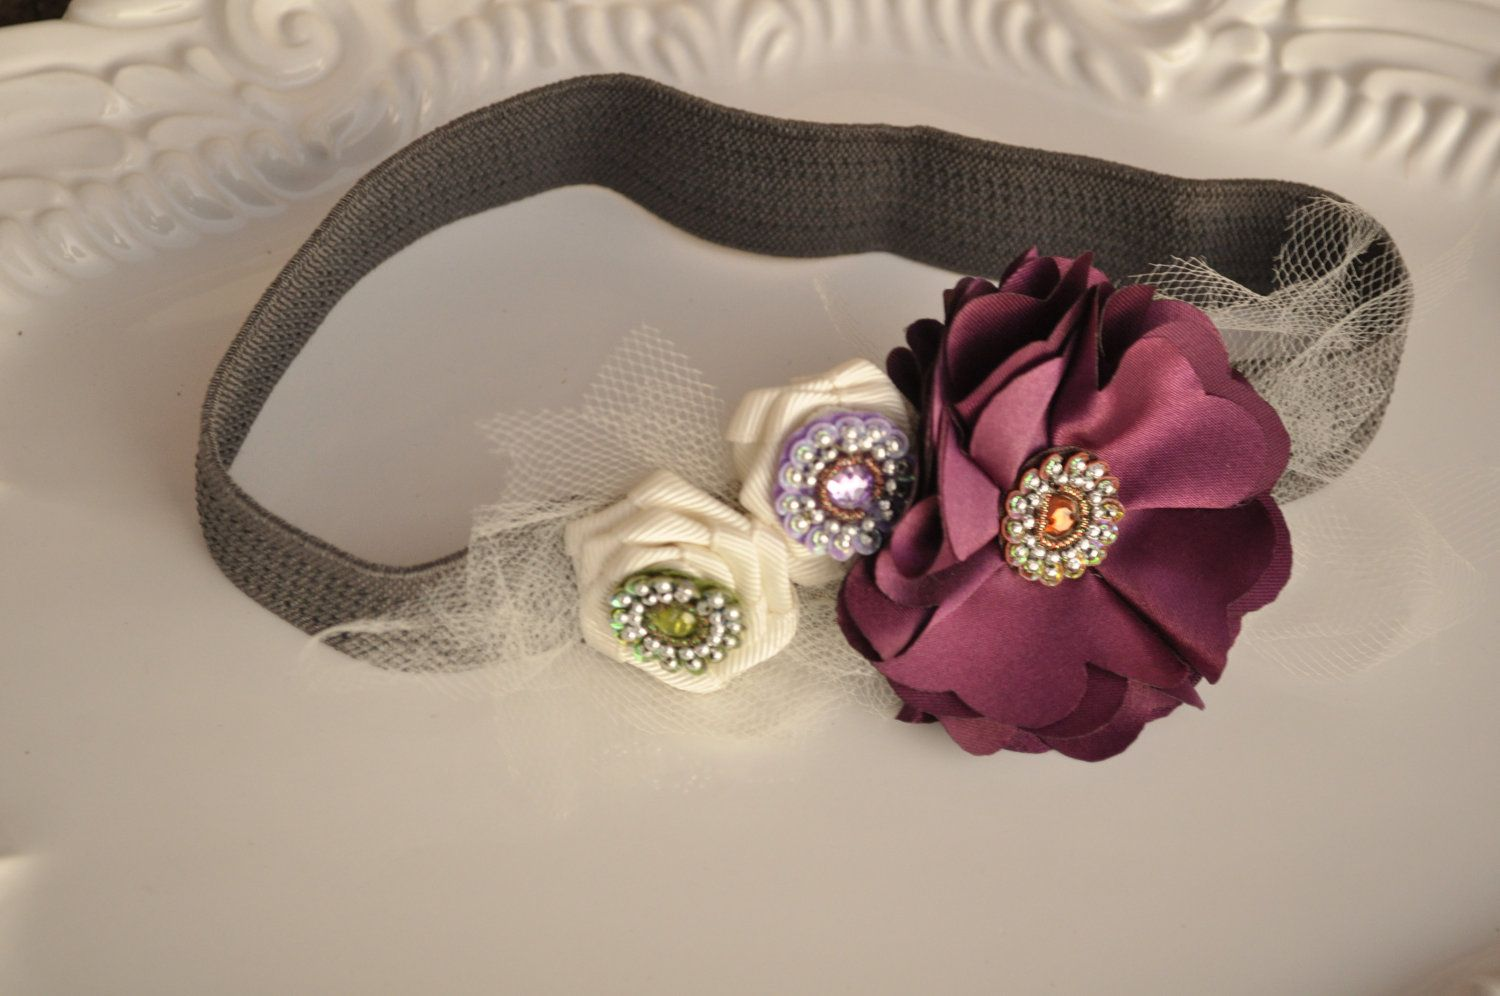 Floral Headband Tulle and Beads Funky Floral on by lewisandbucky, $18.00